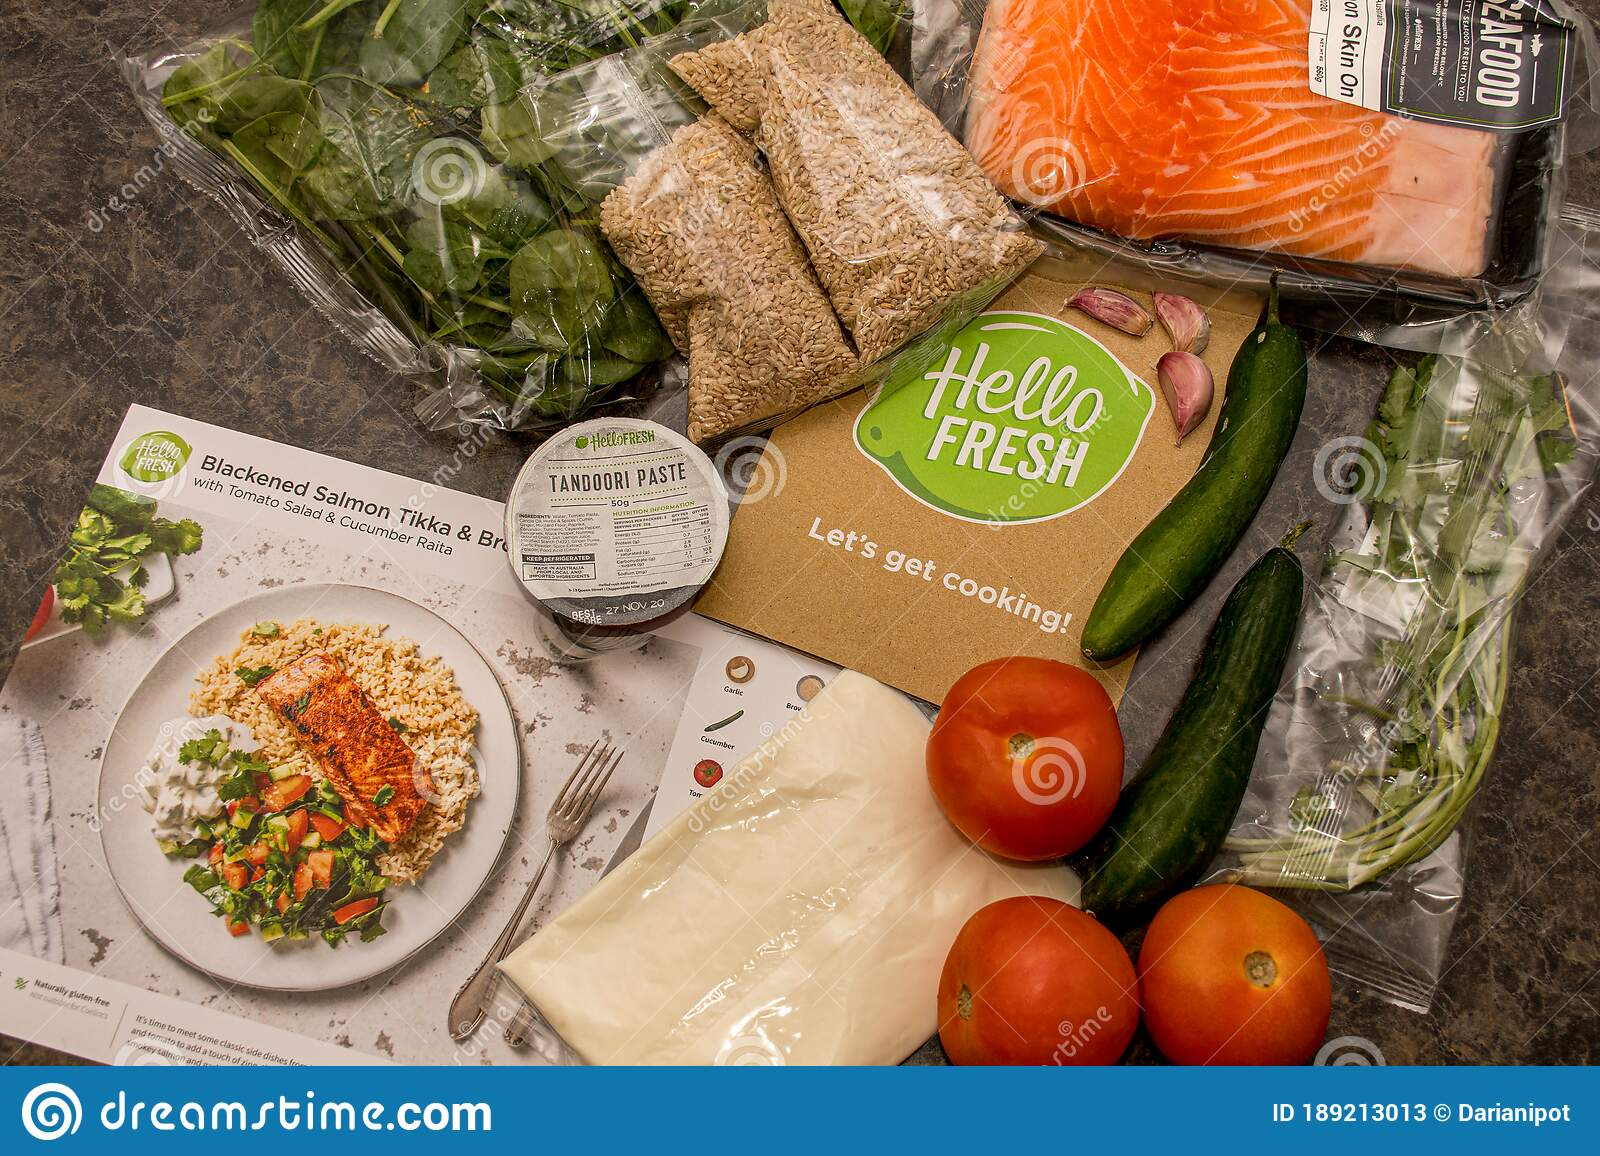 Hello Fresh Meal Kit On A Kitchen Countertop Editorial Stock Photo Image Of Kitchen Business 189213013